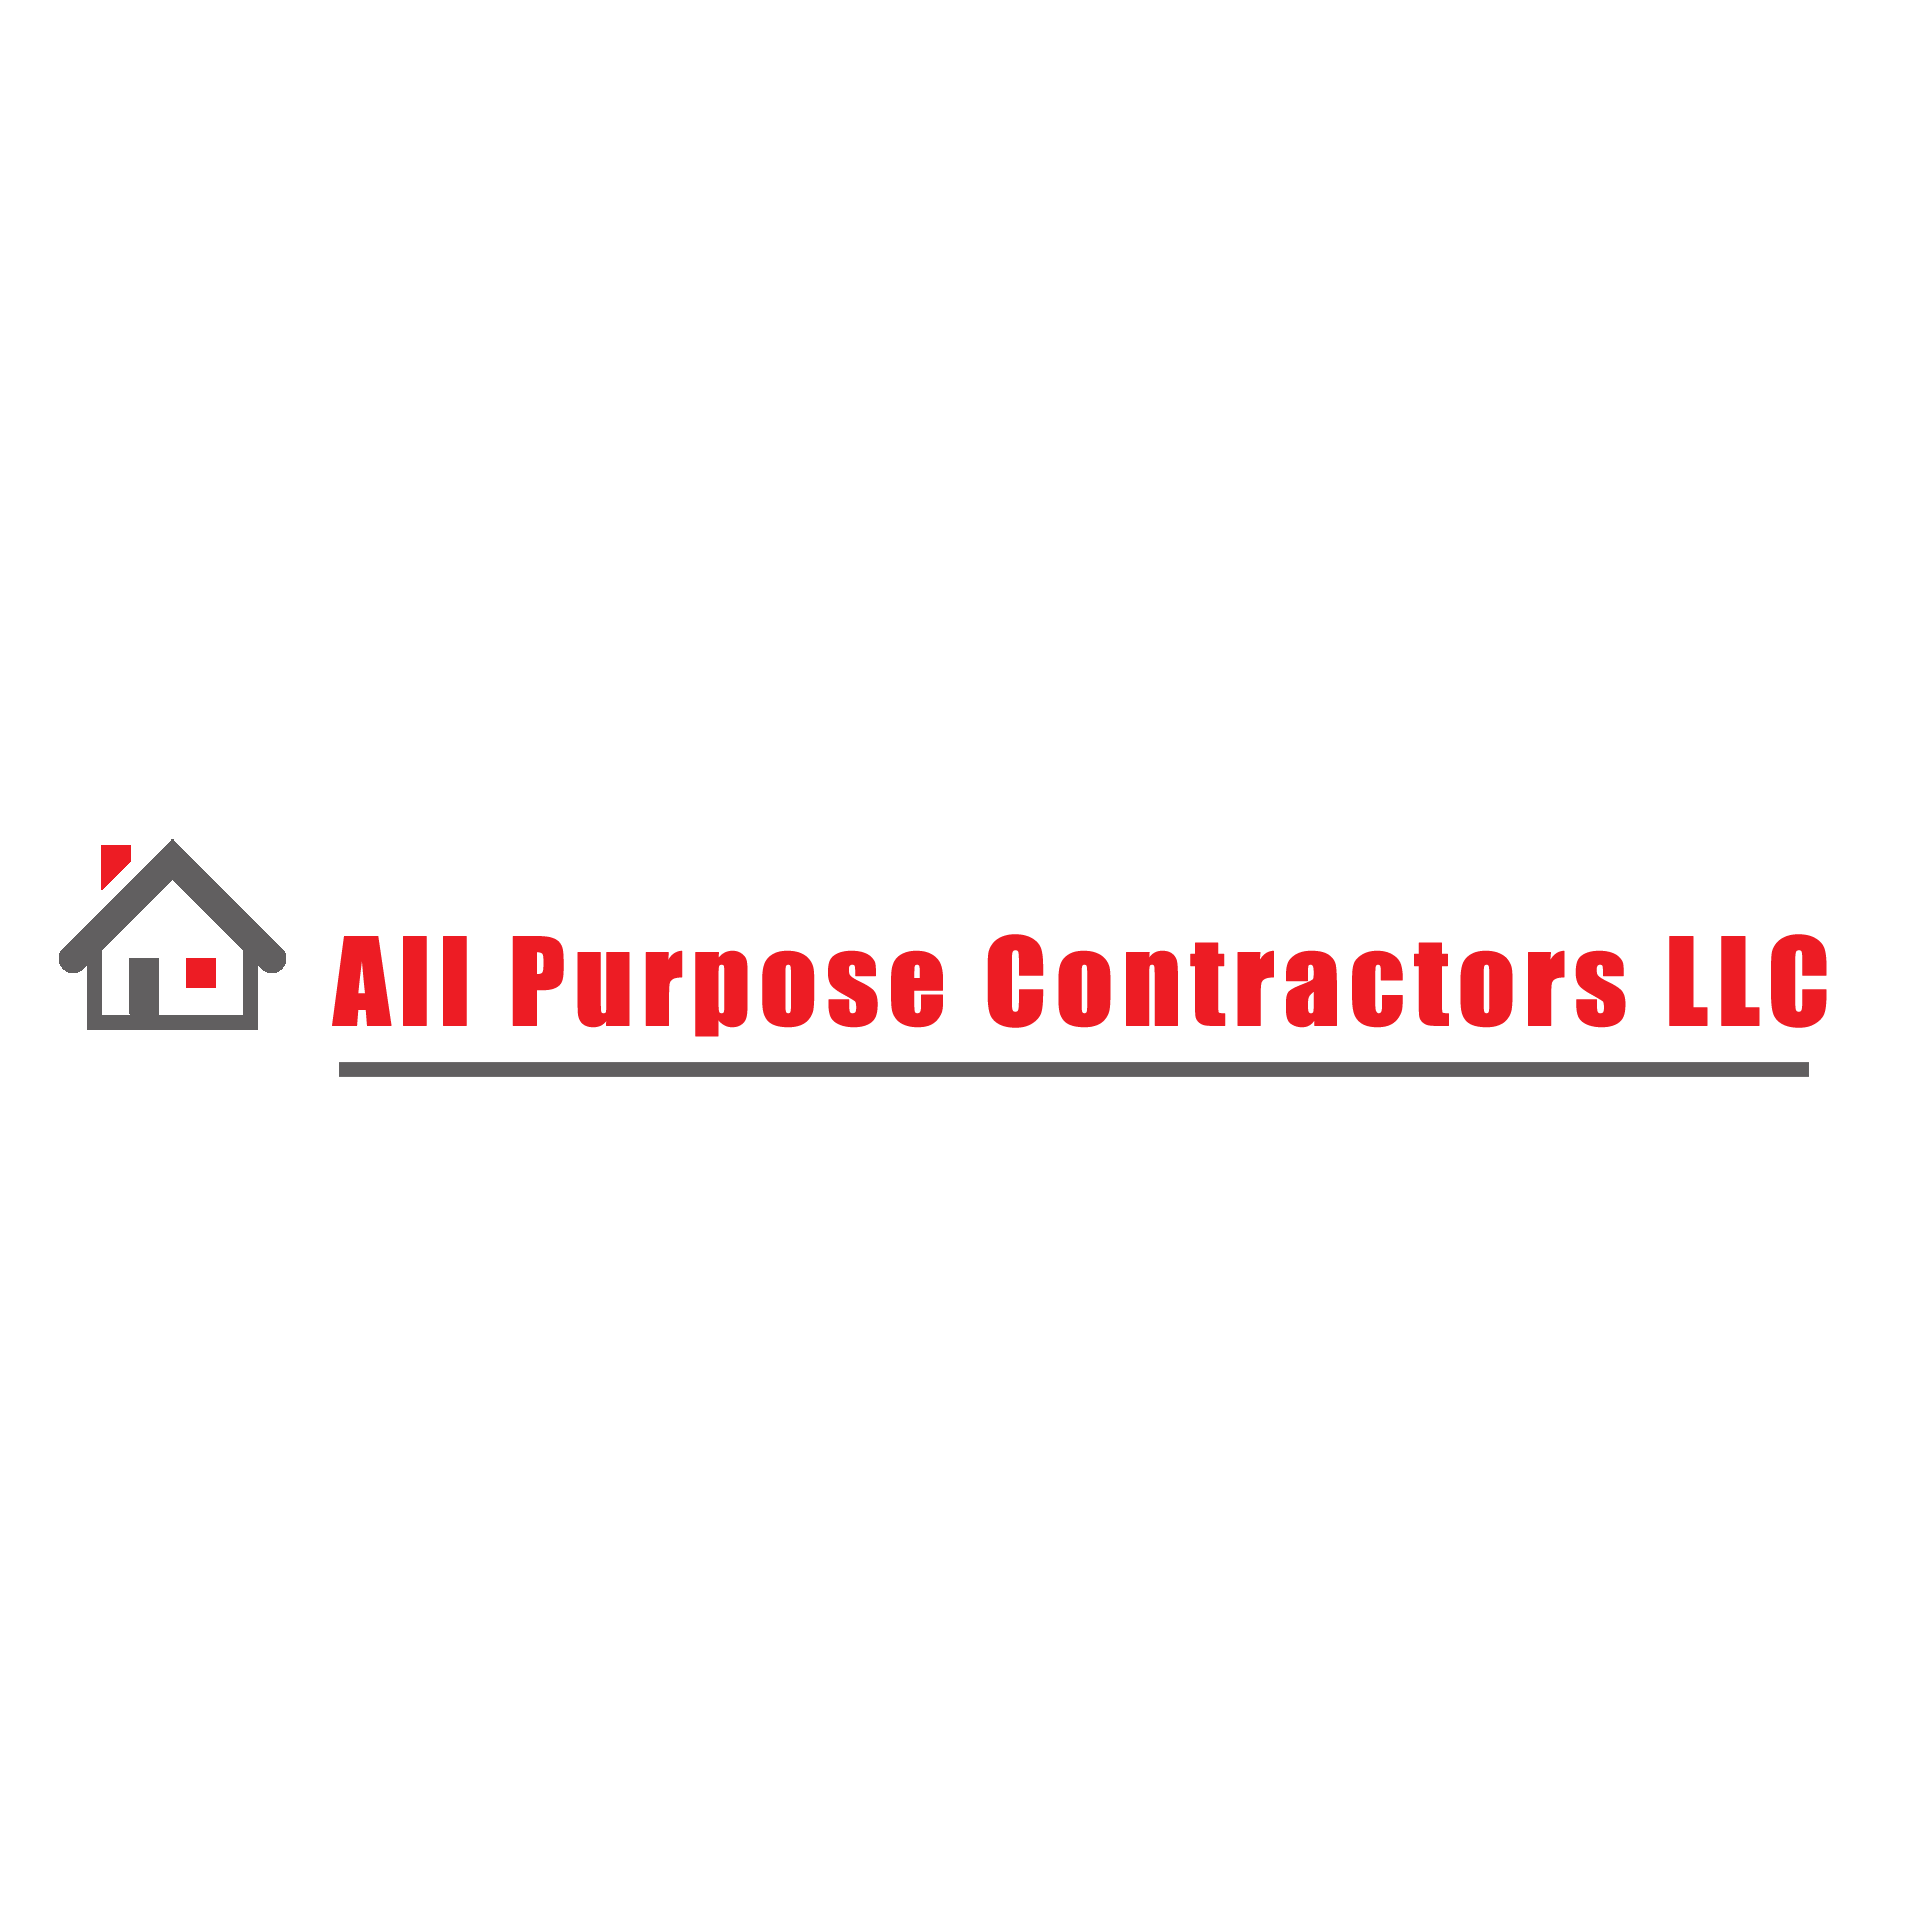 All Purpose Contractors LLC